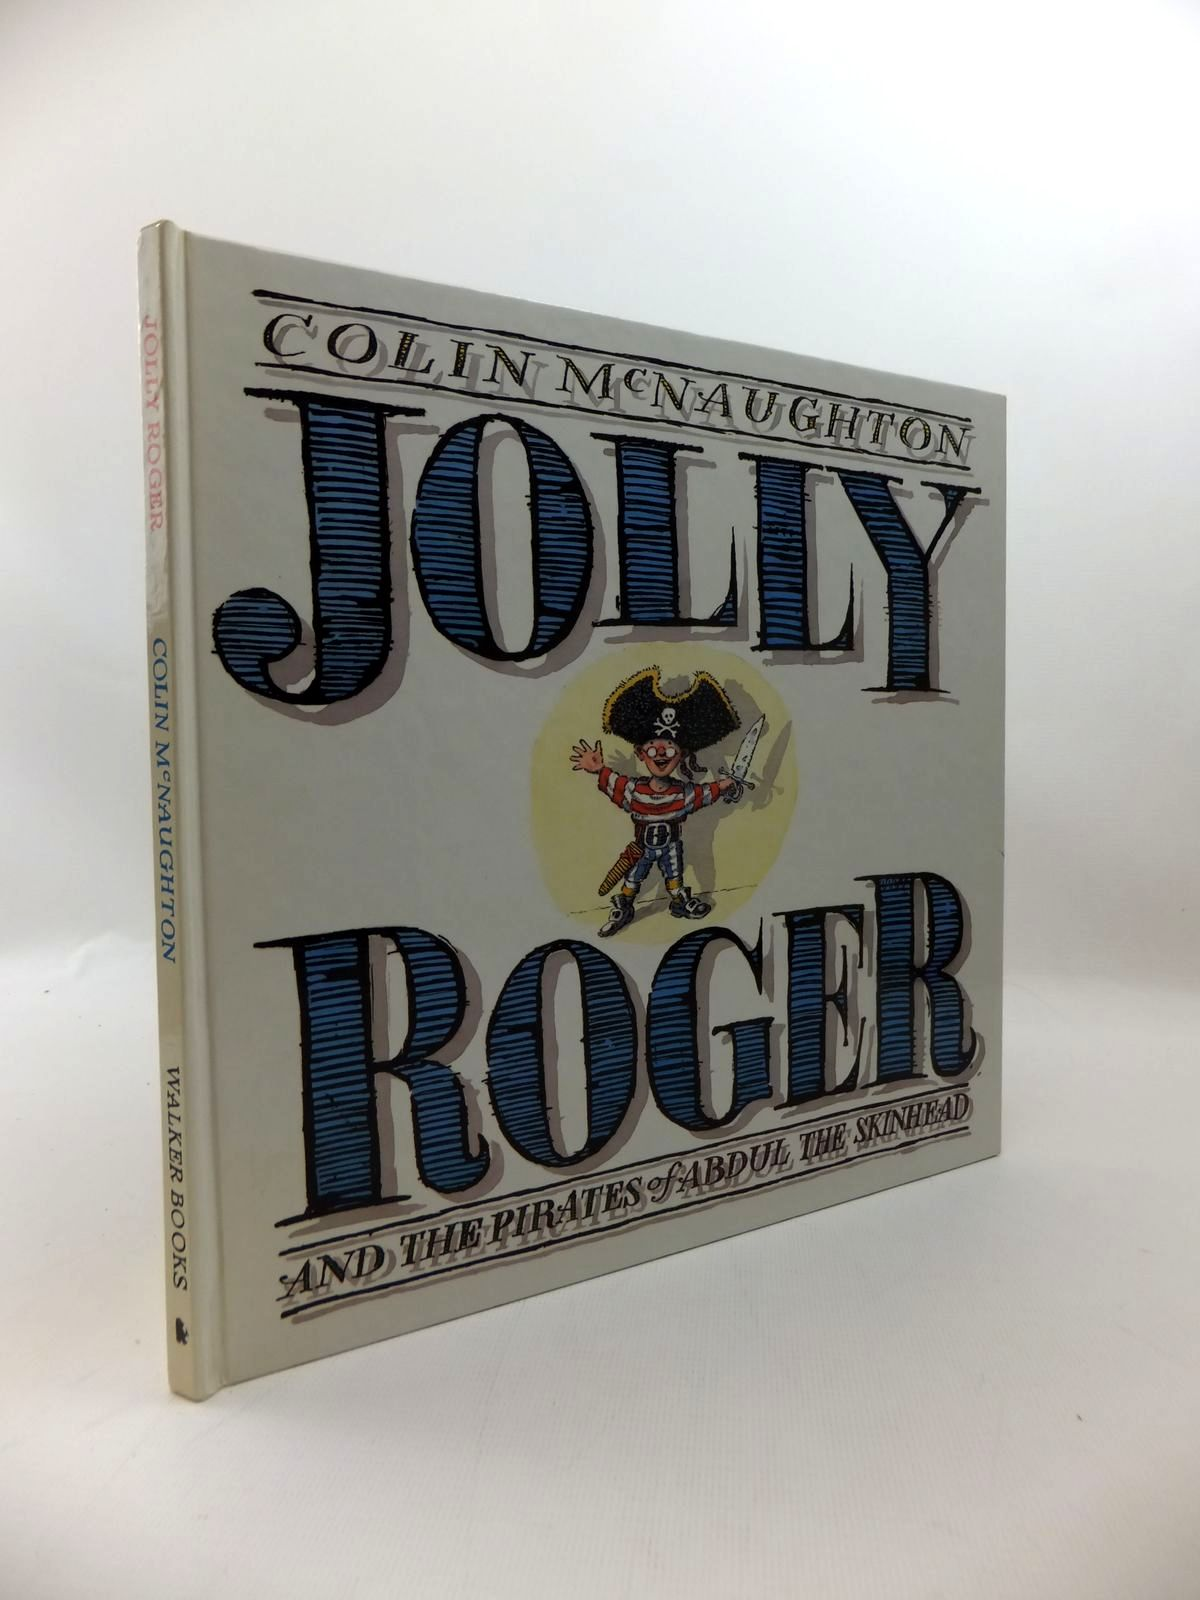 Photo of JOLLY ROGER AND THE PIRATES OF ABDUL THE SKINHEAD- Stock Number: 1814602